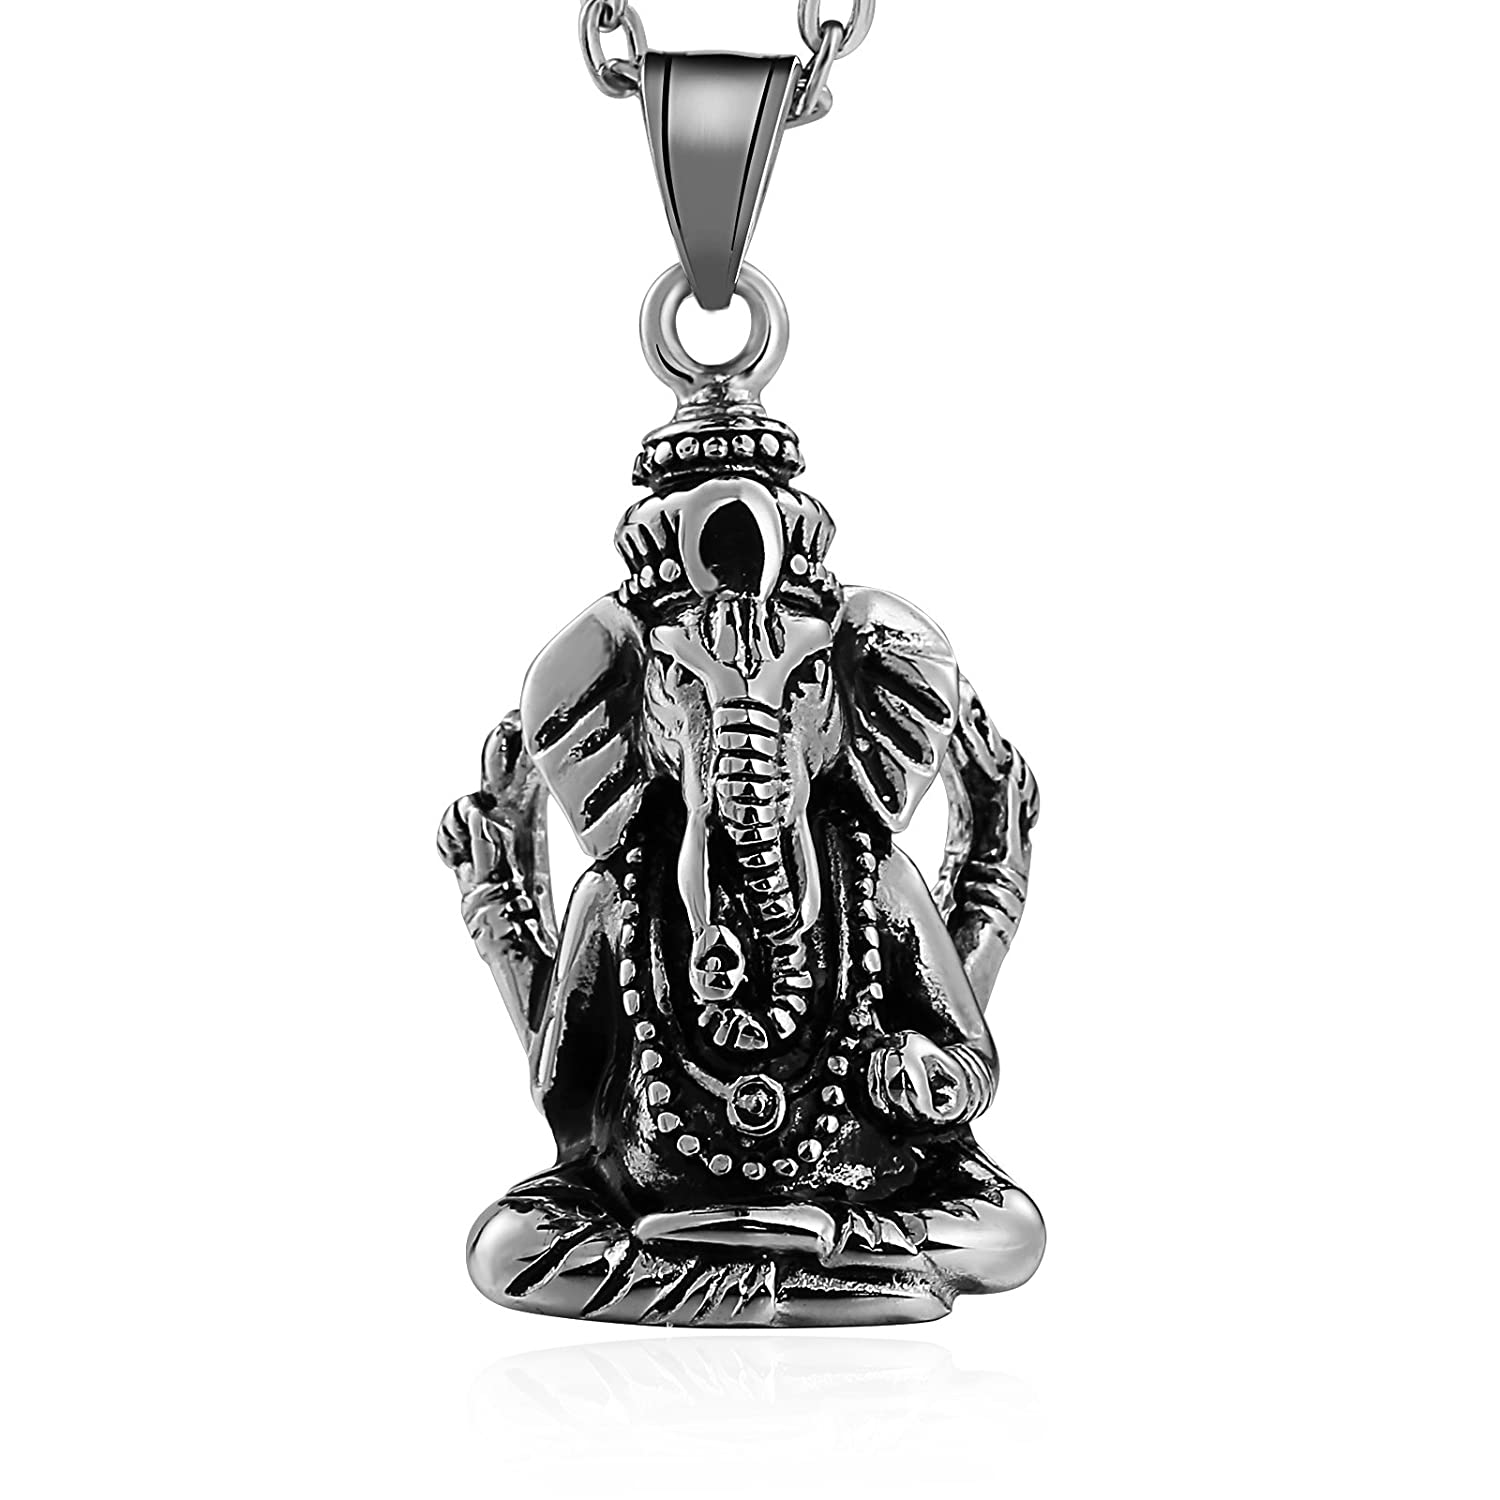 Bishilin Stainless Steel Pendant Necklace for Men Women Ganesha Ganesh God Pendant Gold/Silver BIS6W2NECK069